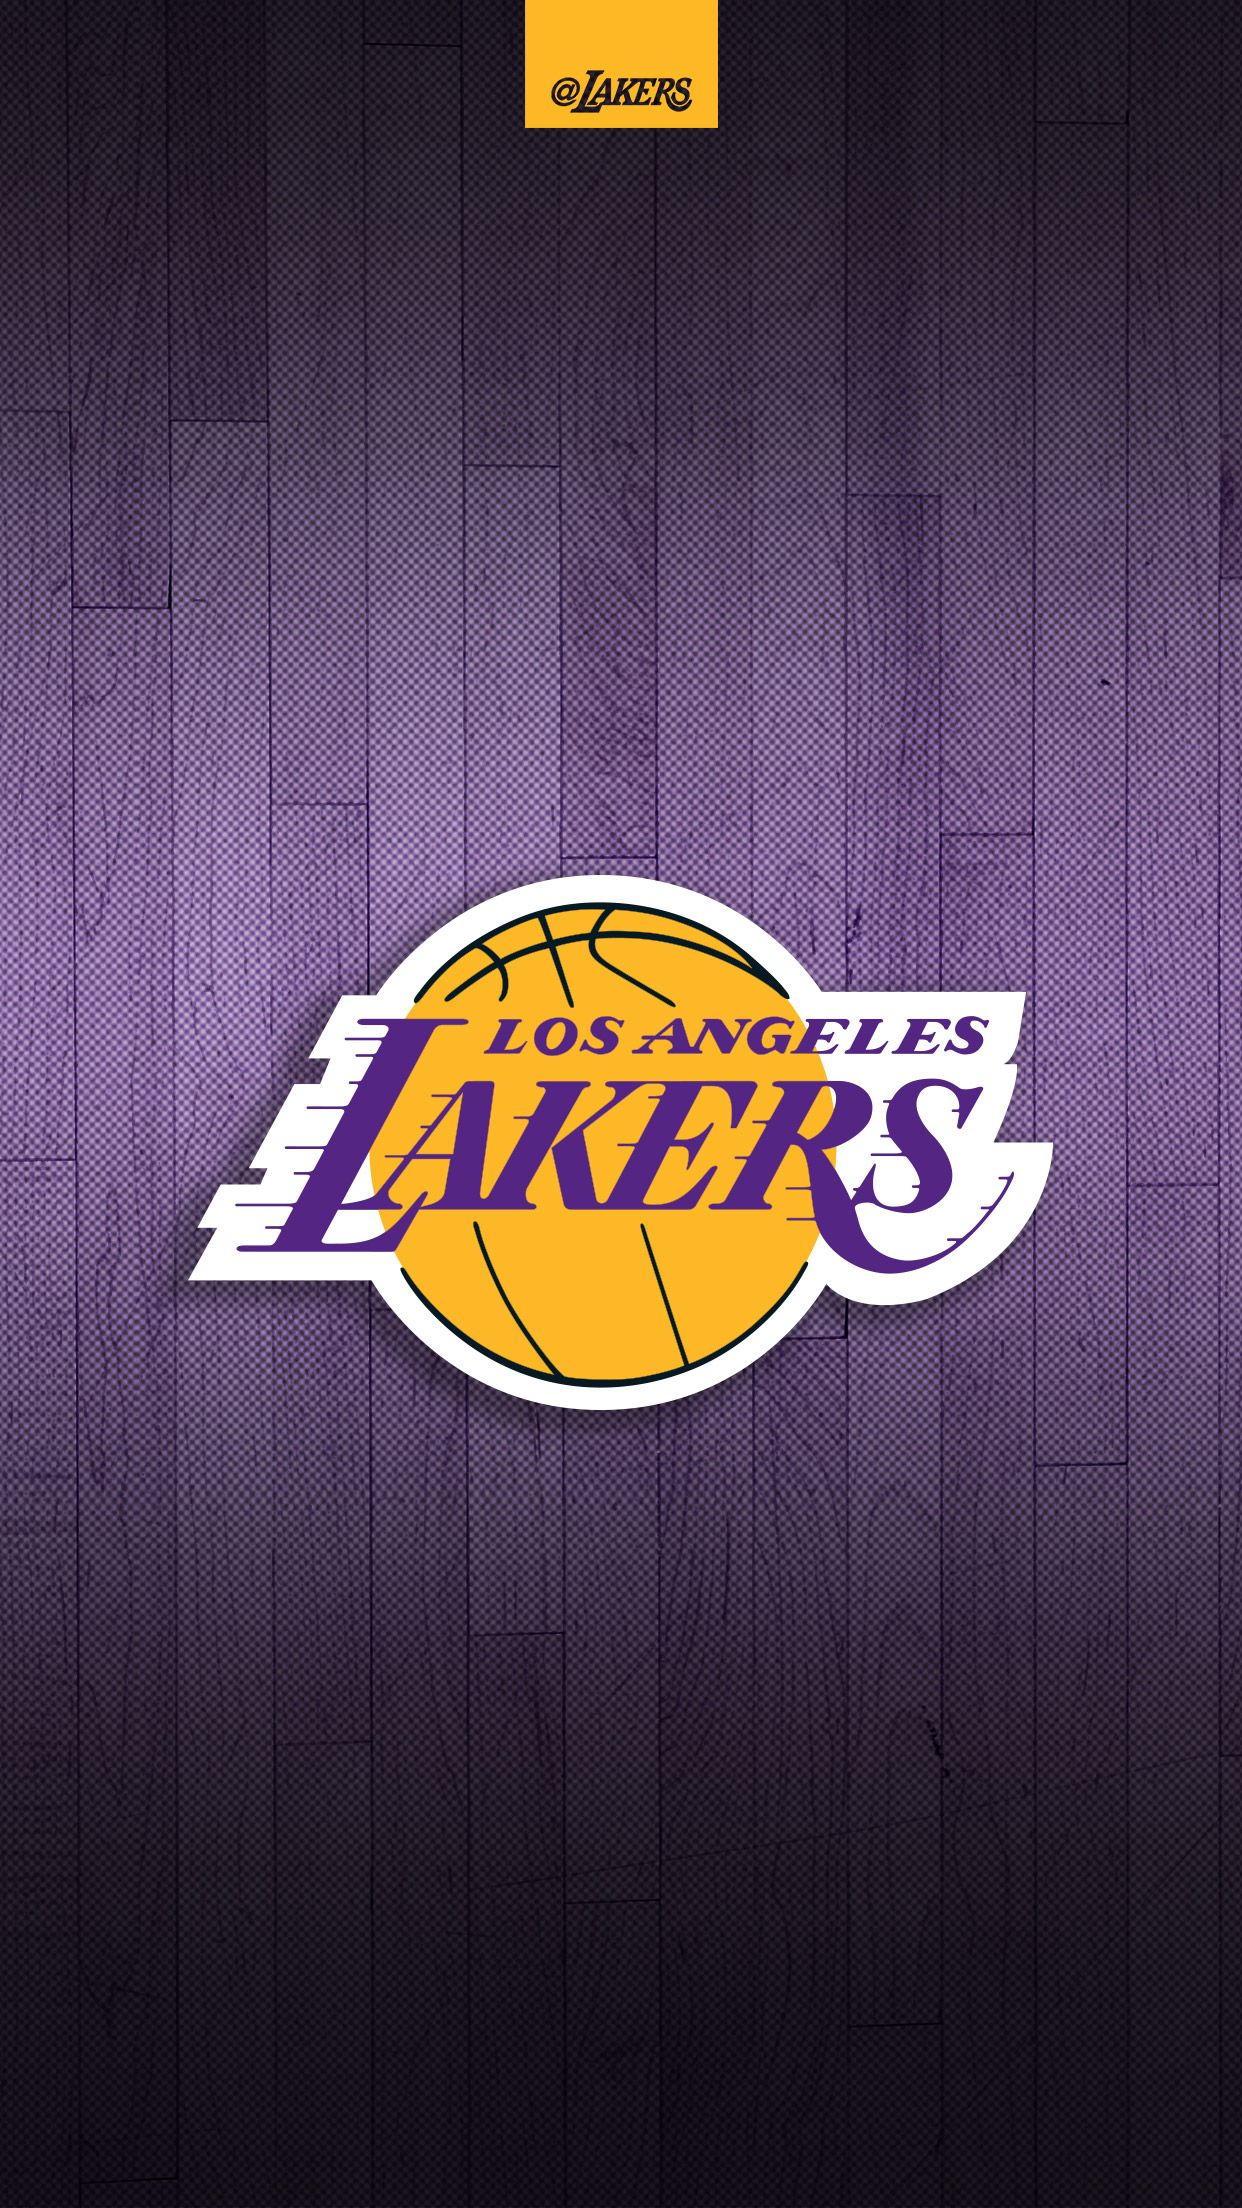 Lakers Wallpapers And Infographics Los Angeles Lakers Lakers Wallpaper Lakers Kobe Bryant Wallpaper